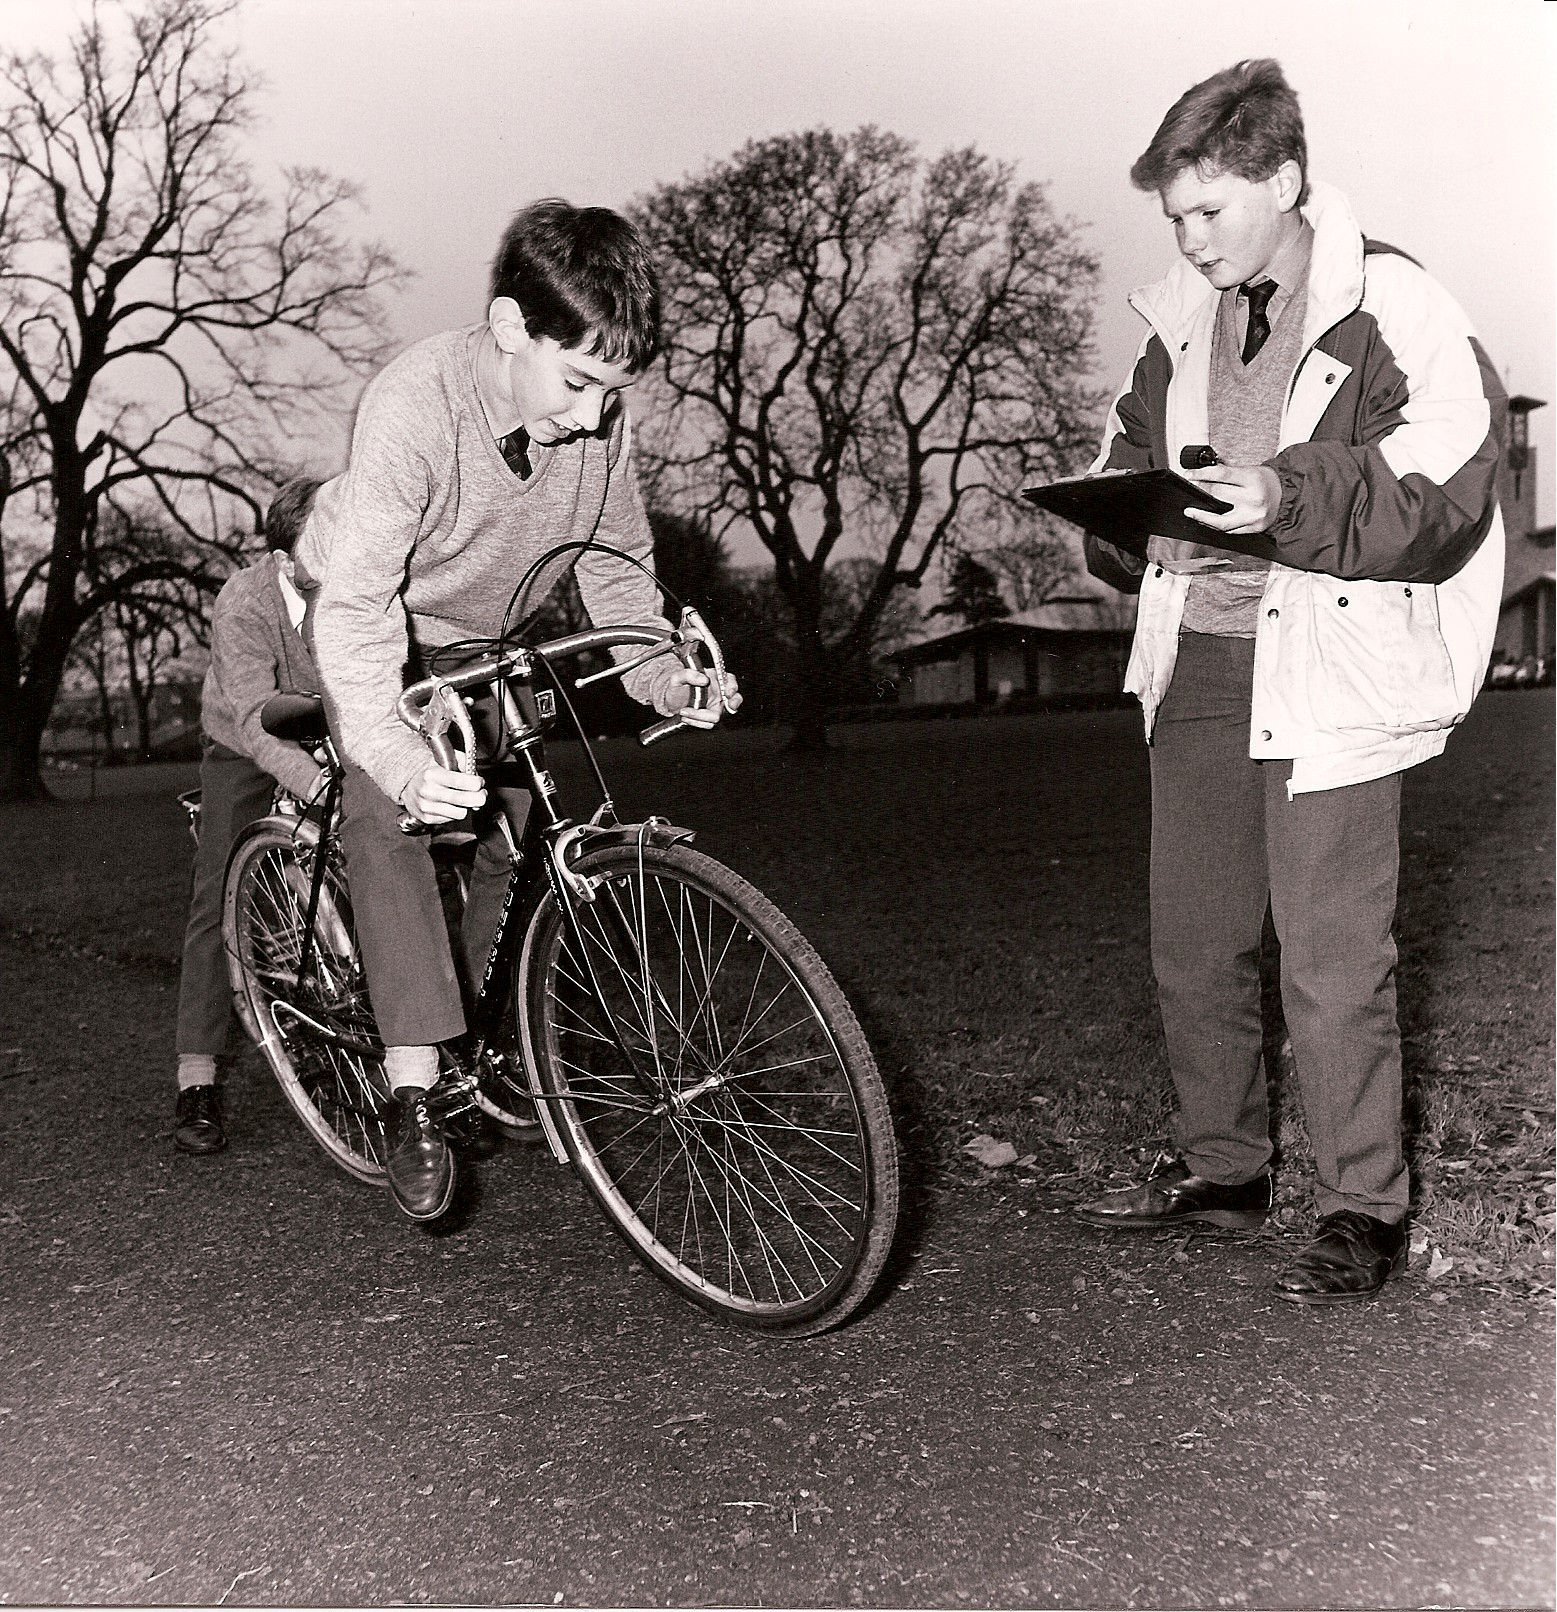 1989 Effects of Road Surface on Stopping Distance of Bicycles - Eoin Lawless & Damien Byrne - Gonzaga College, Dublin